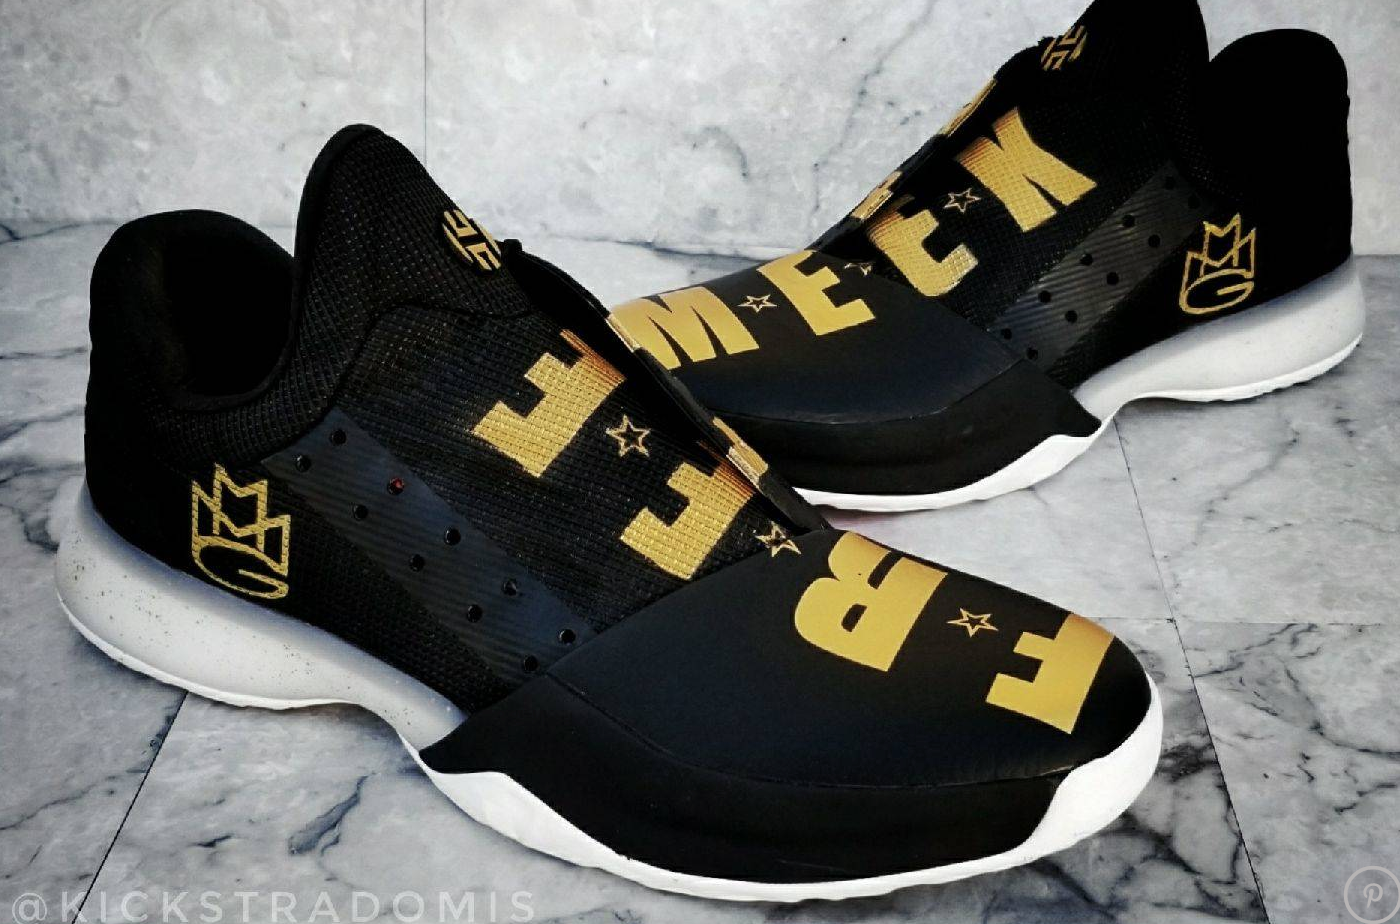 Mill Meek shoe game pictures forecasting to wear in winter in 2019